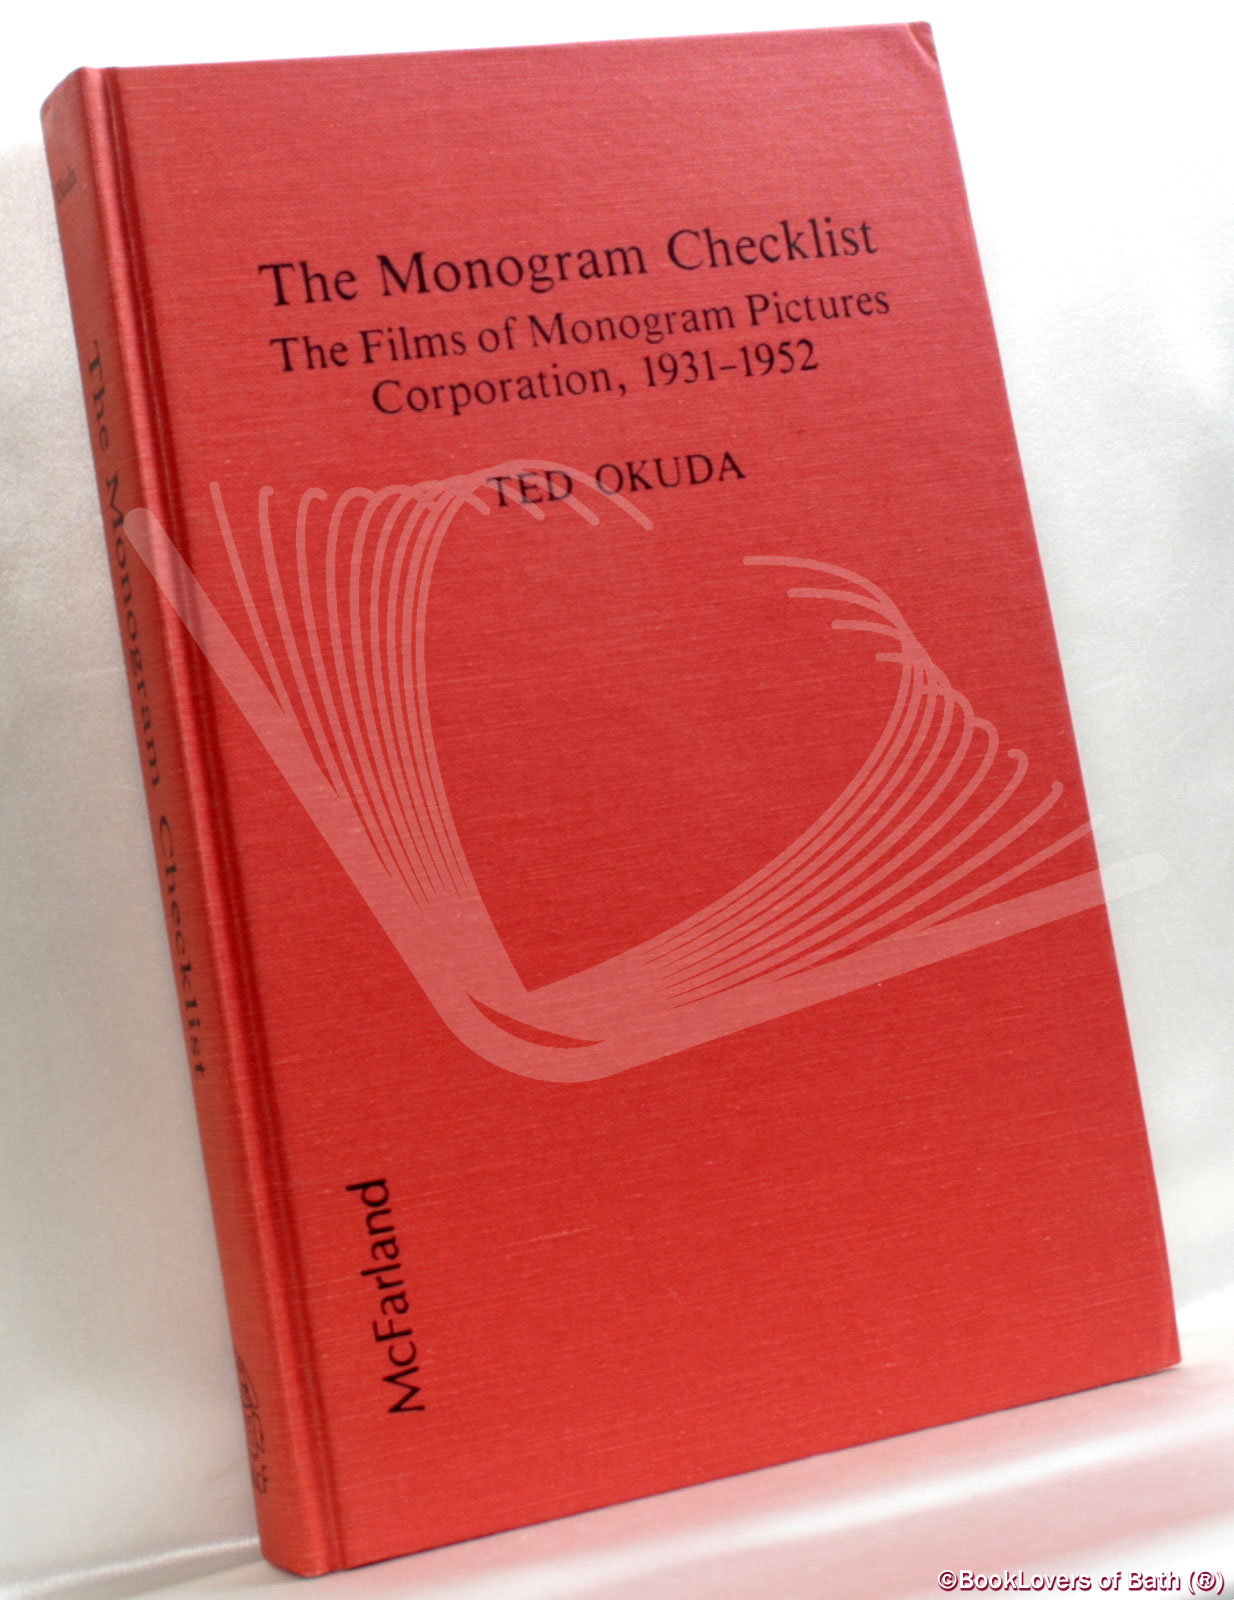 The Monogram Checklist: The Films of Monogram Pictures Corporation, 1931-52 - Ted Okuda